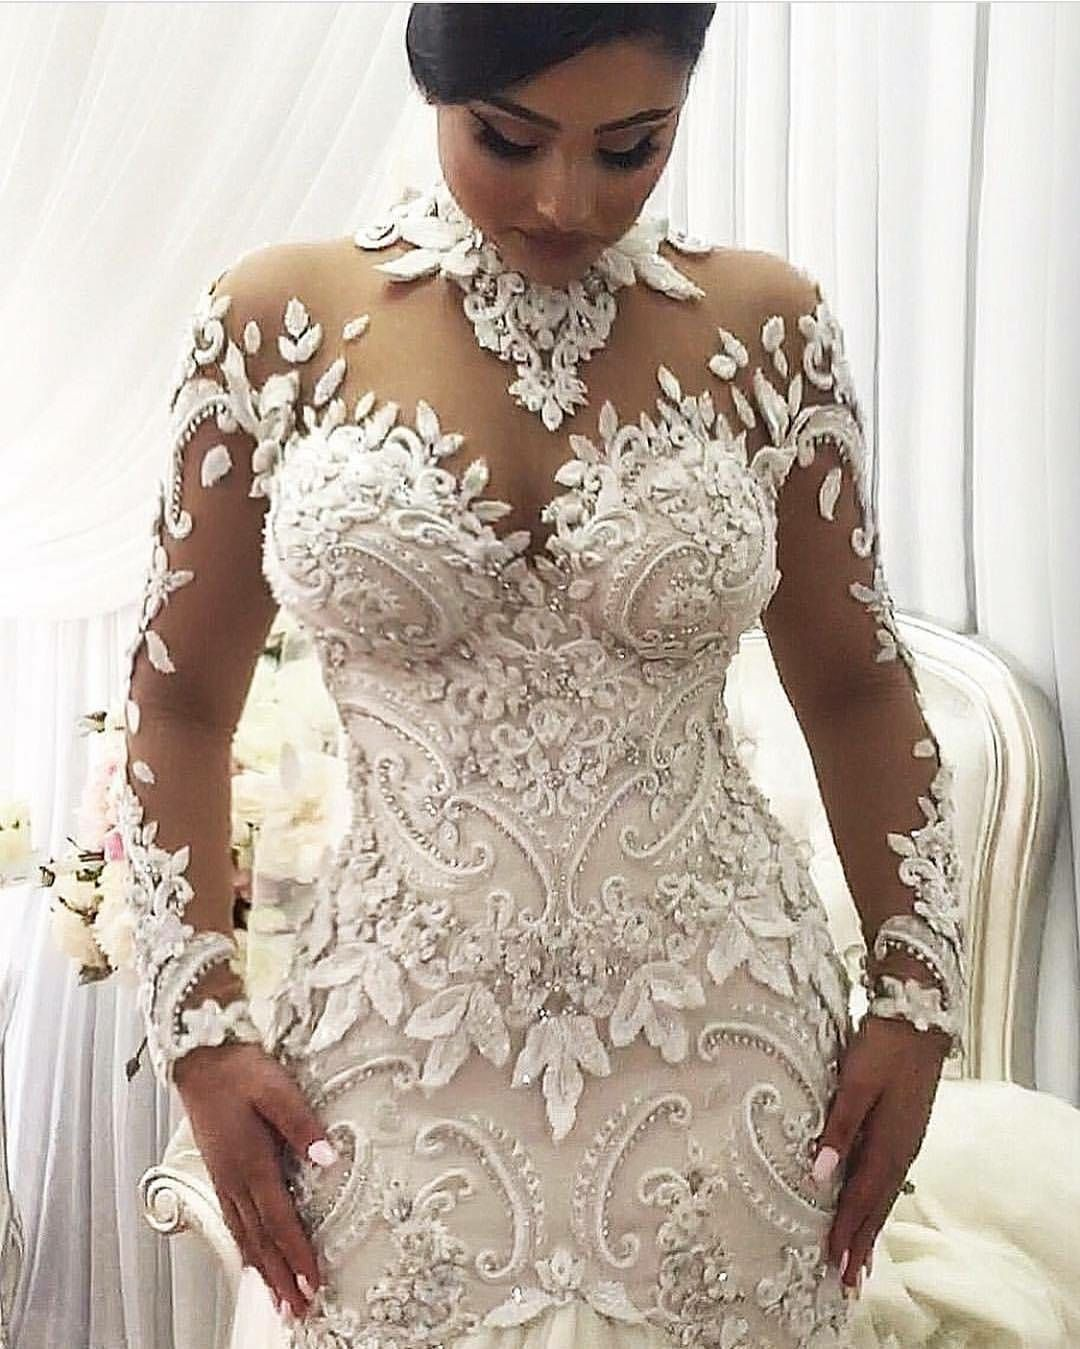 Design your own wedding dress near me  The detail on this long sleeve weddi g goqn is increadible We have